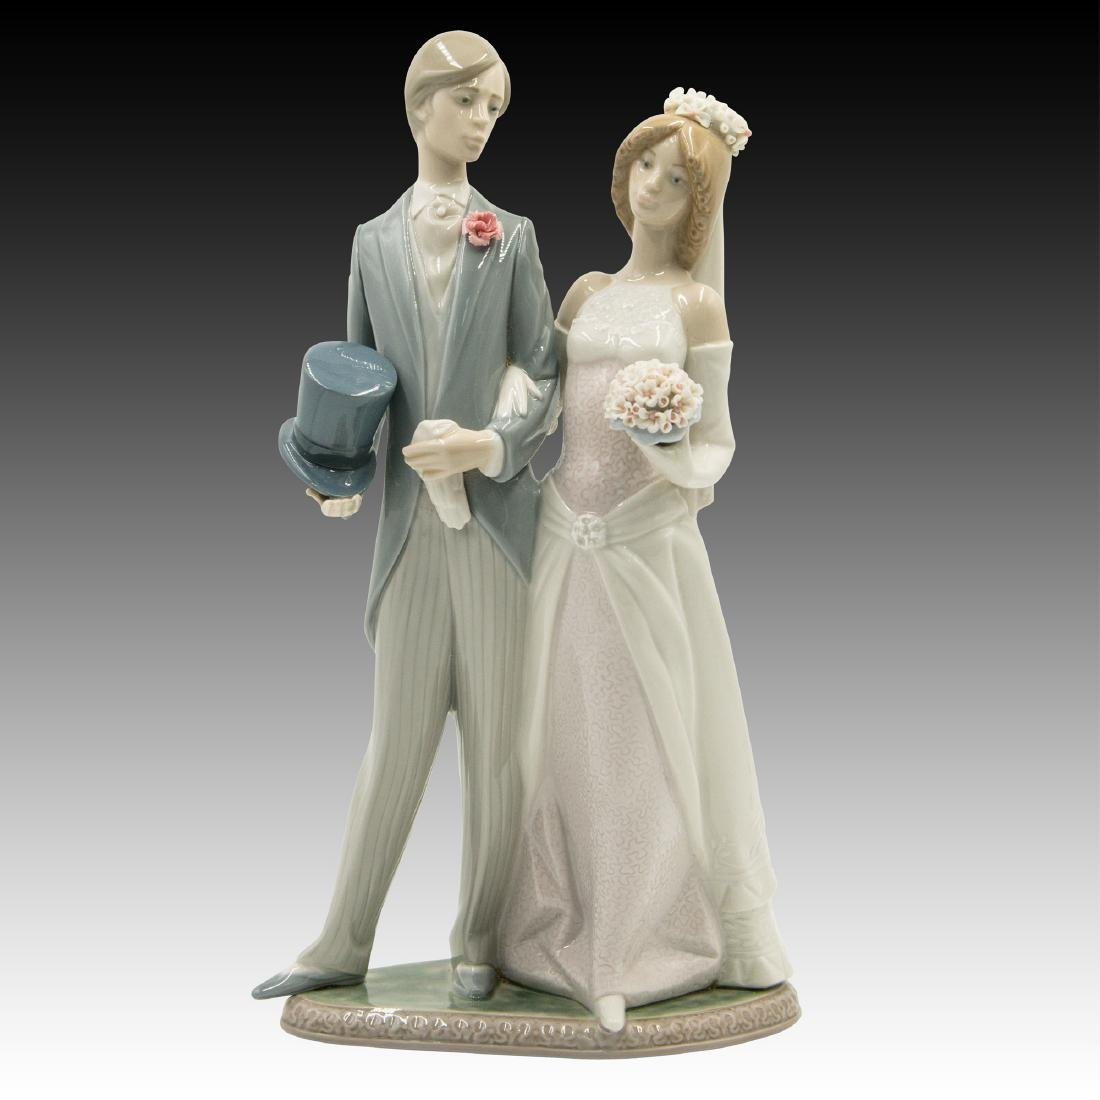 LLADRO MATRIMONY FIGURINE 1404 RETIRED 1997